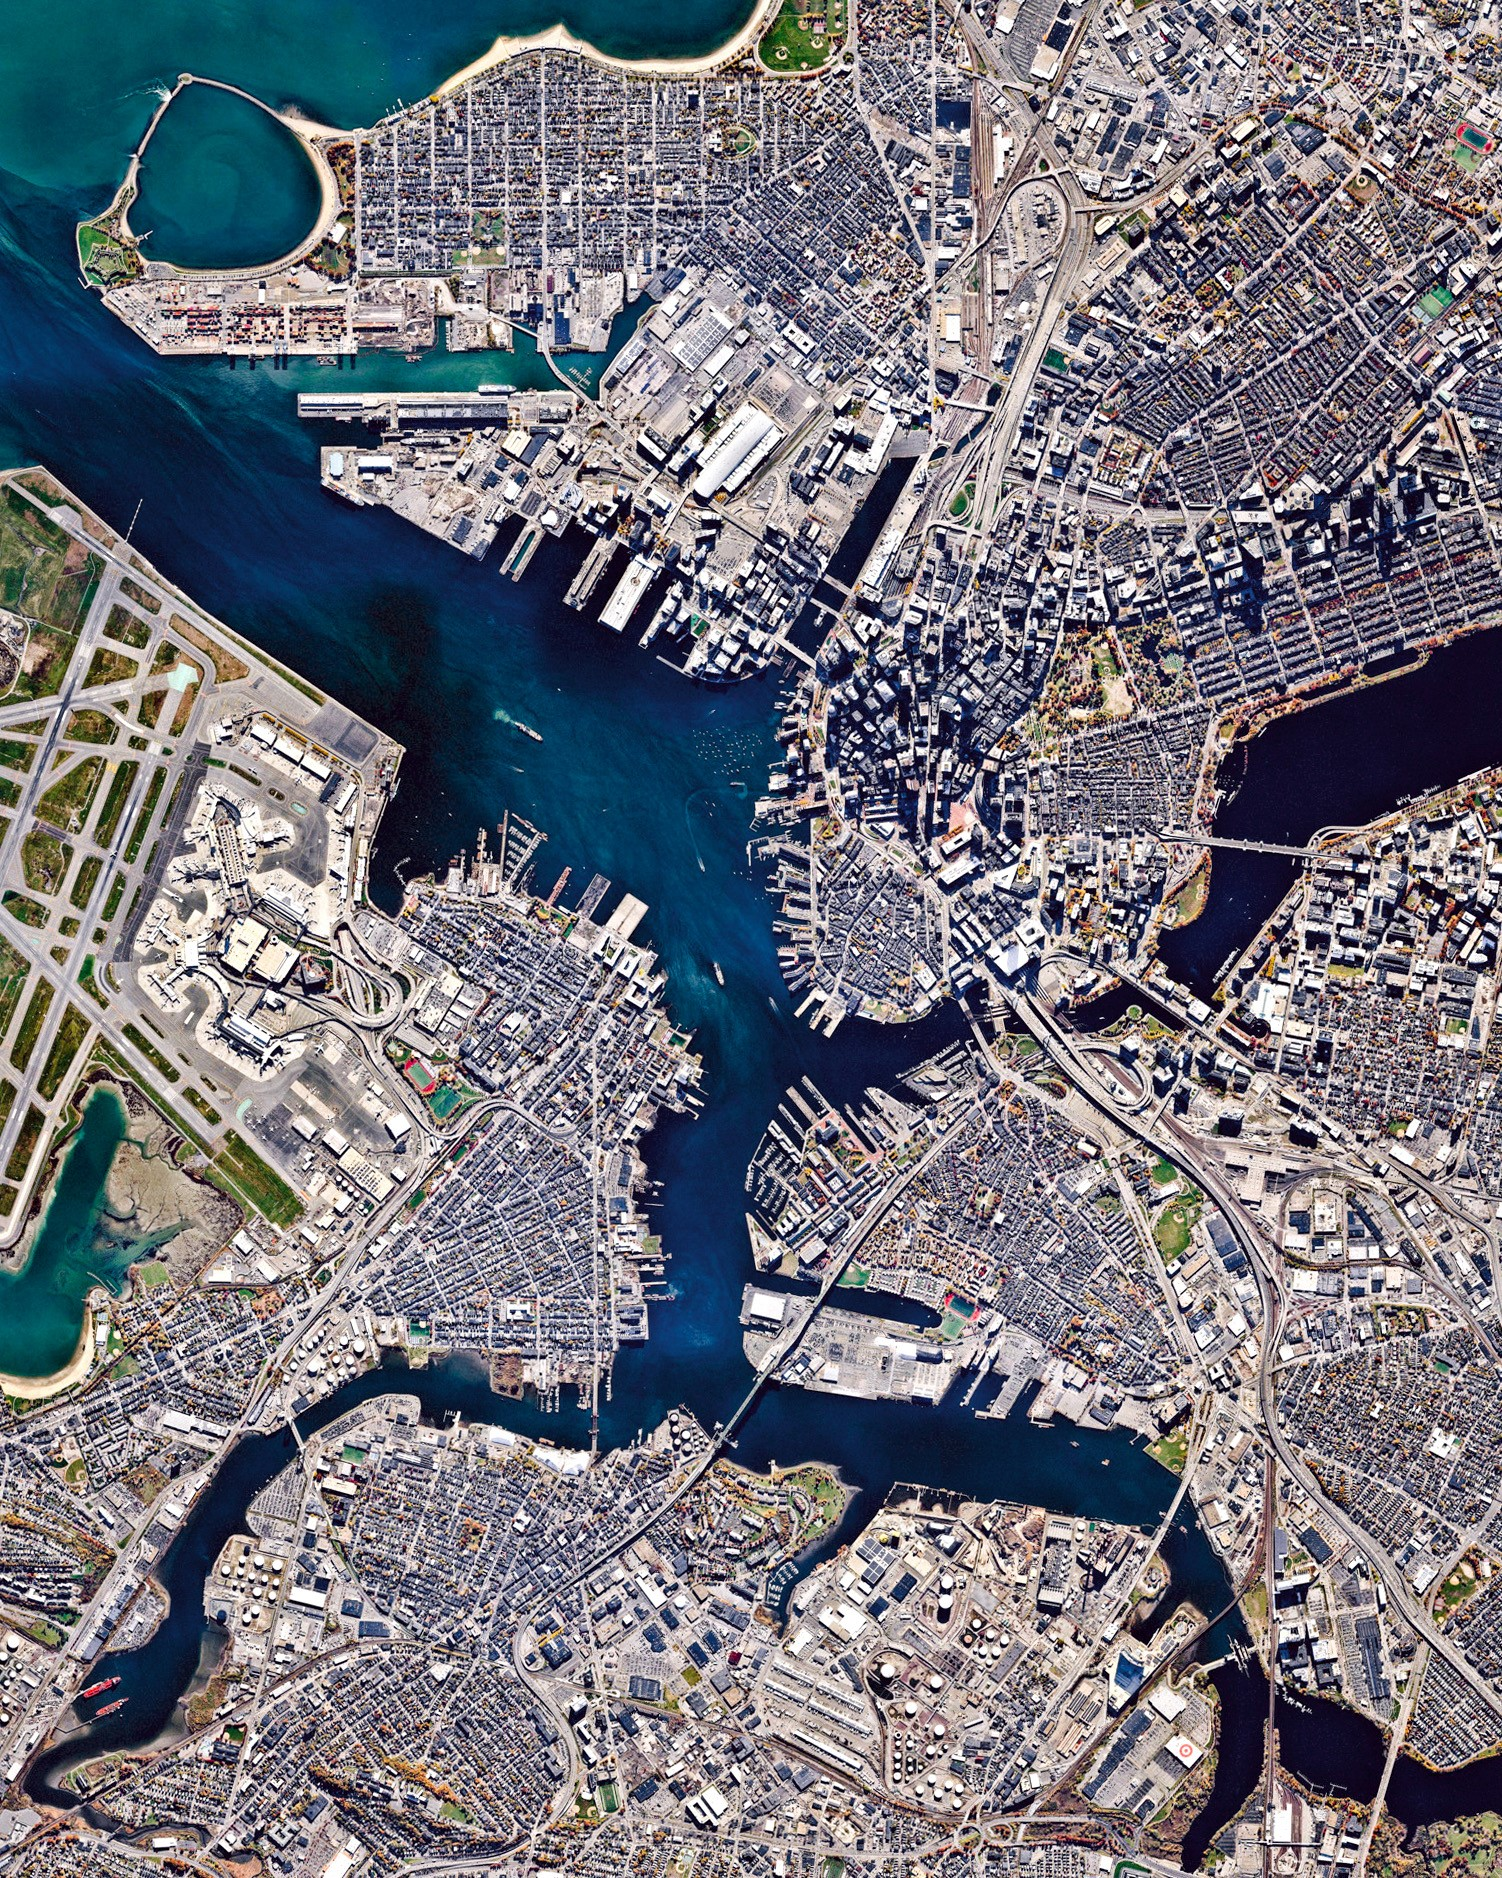 """Boston is the capital and most populous city in the Commonwealth of Massachusetts, with more than 4.6 million people in its metro area. In this Overview, three waterways can be seen flowing through the city and emptying into Boston Harbor — Chelsea Creek at left; the Mystic River in the center; and the Charles River at right.  42°21'29.0""""N, 71°03'49.0""""W  Source imagery: Nearmap"""